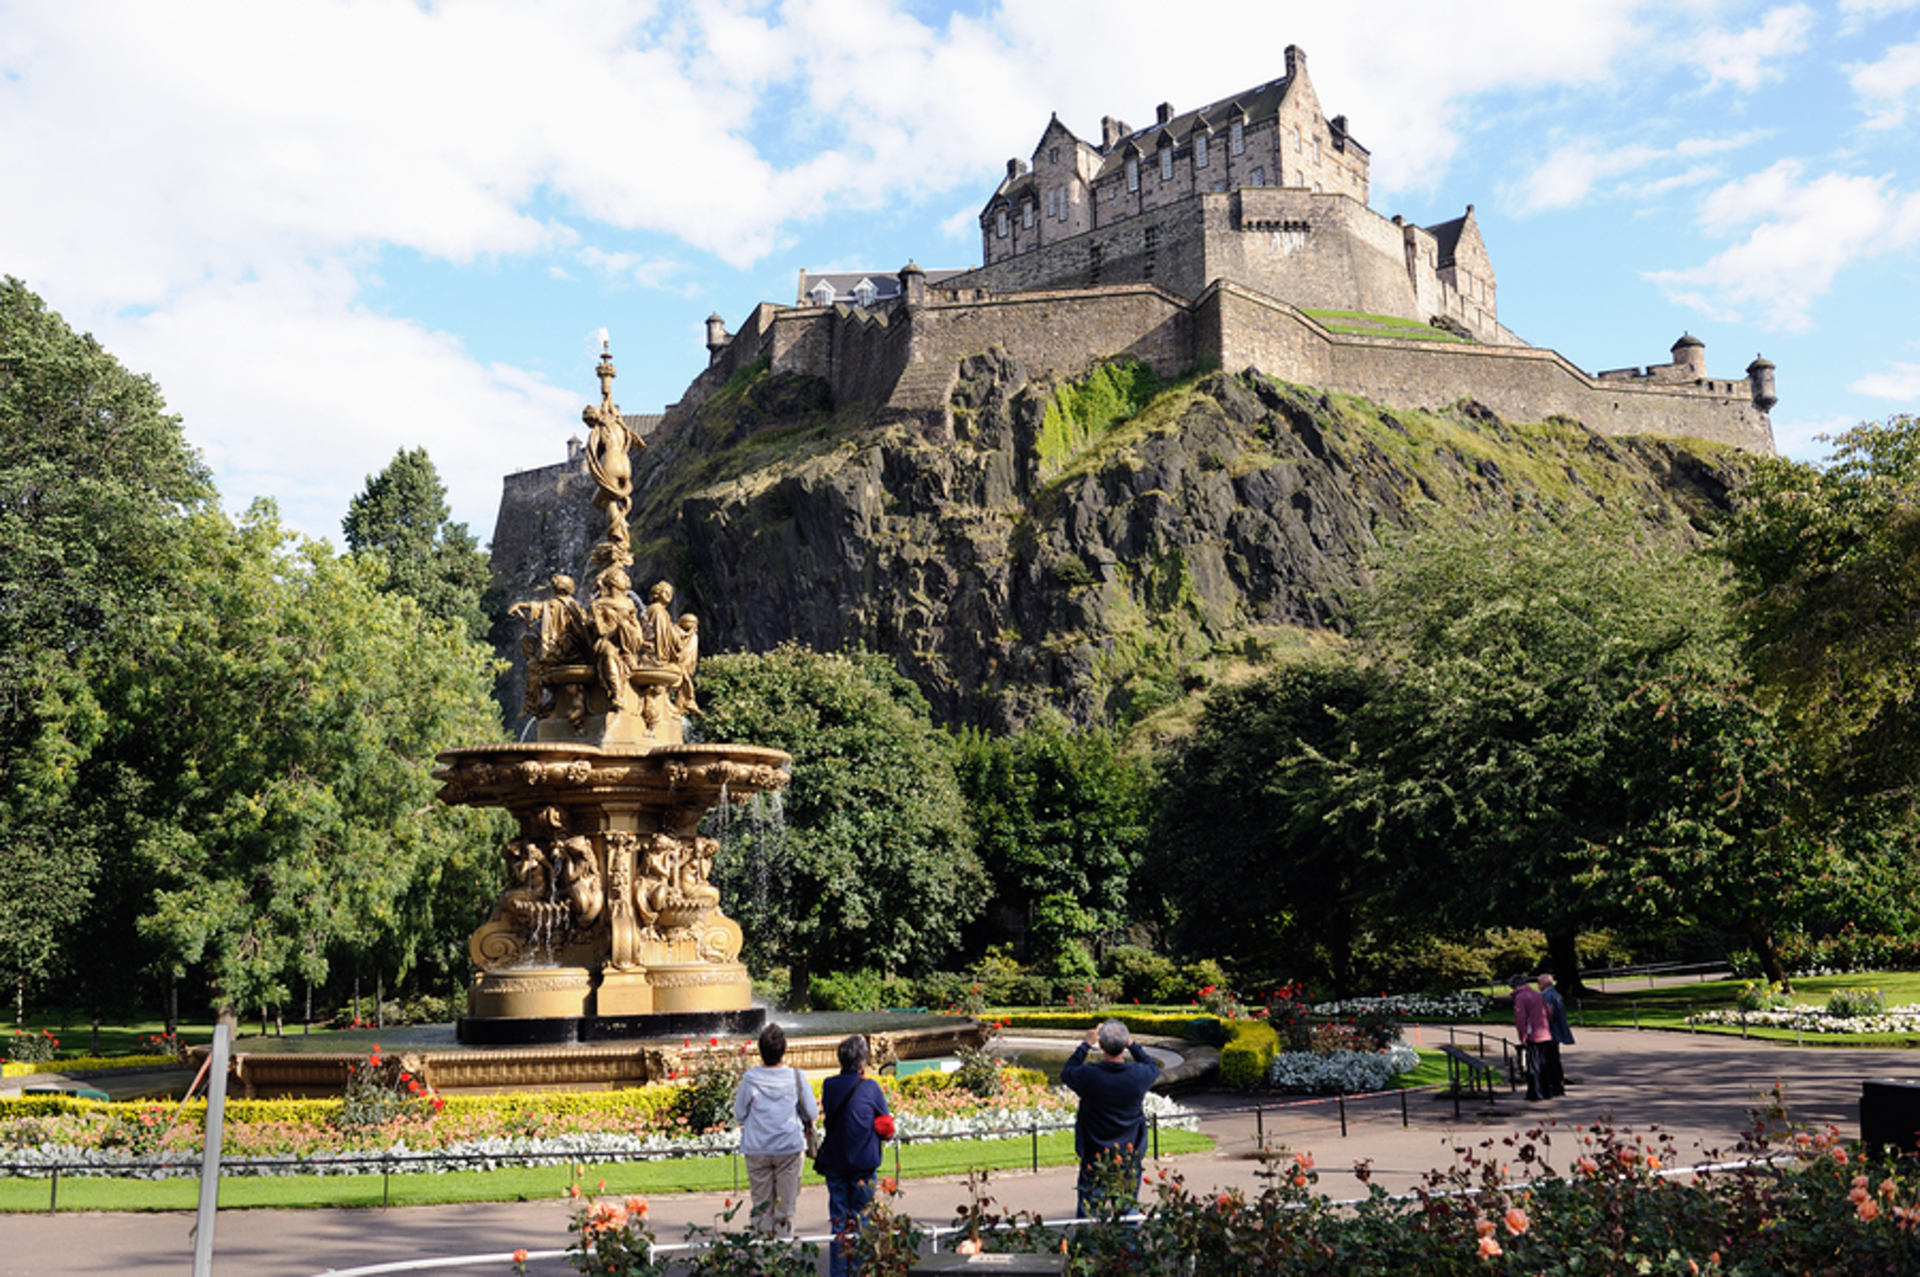 10 Tips for shooting in Edinburgh